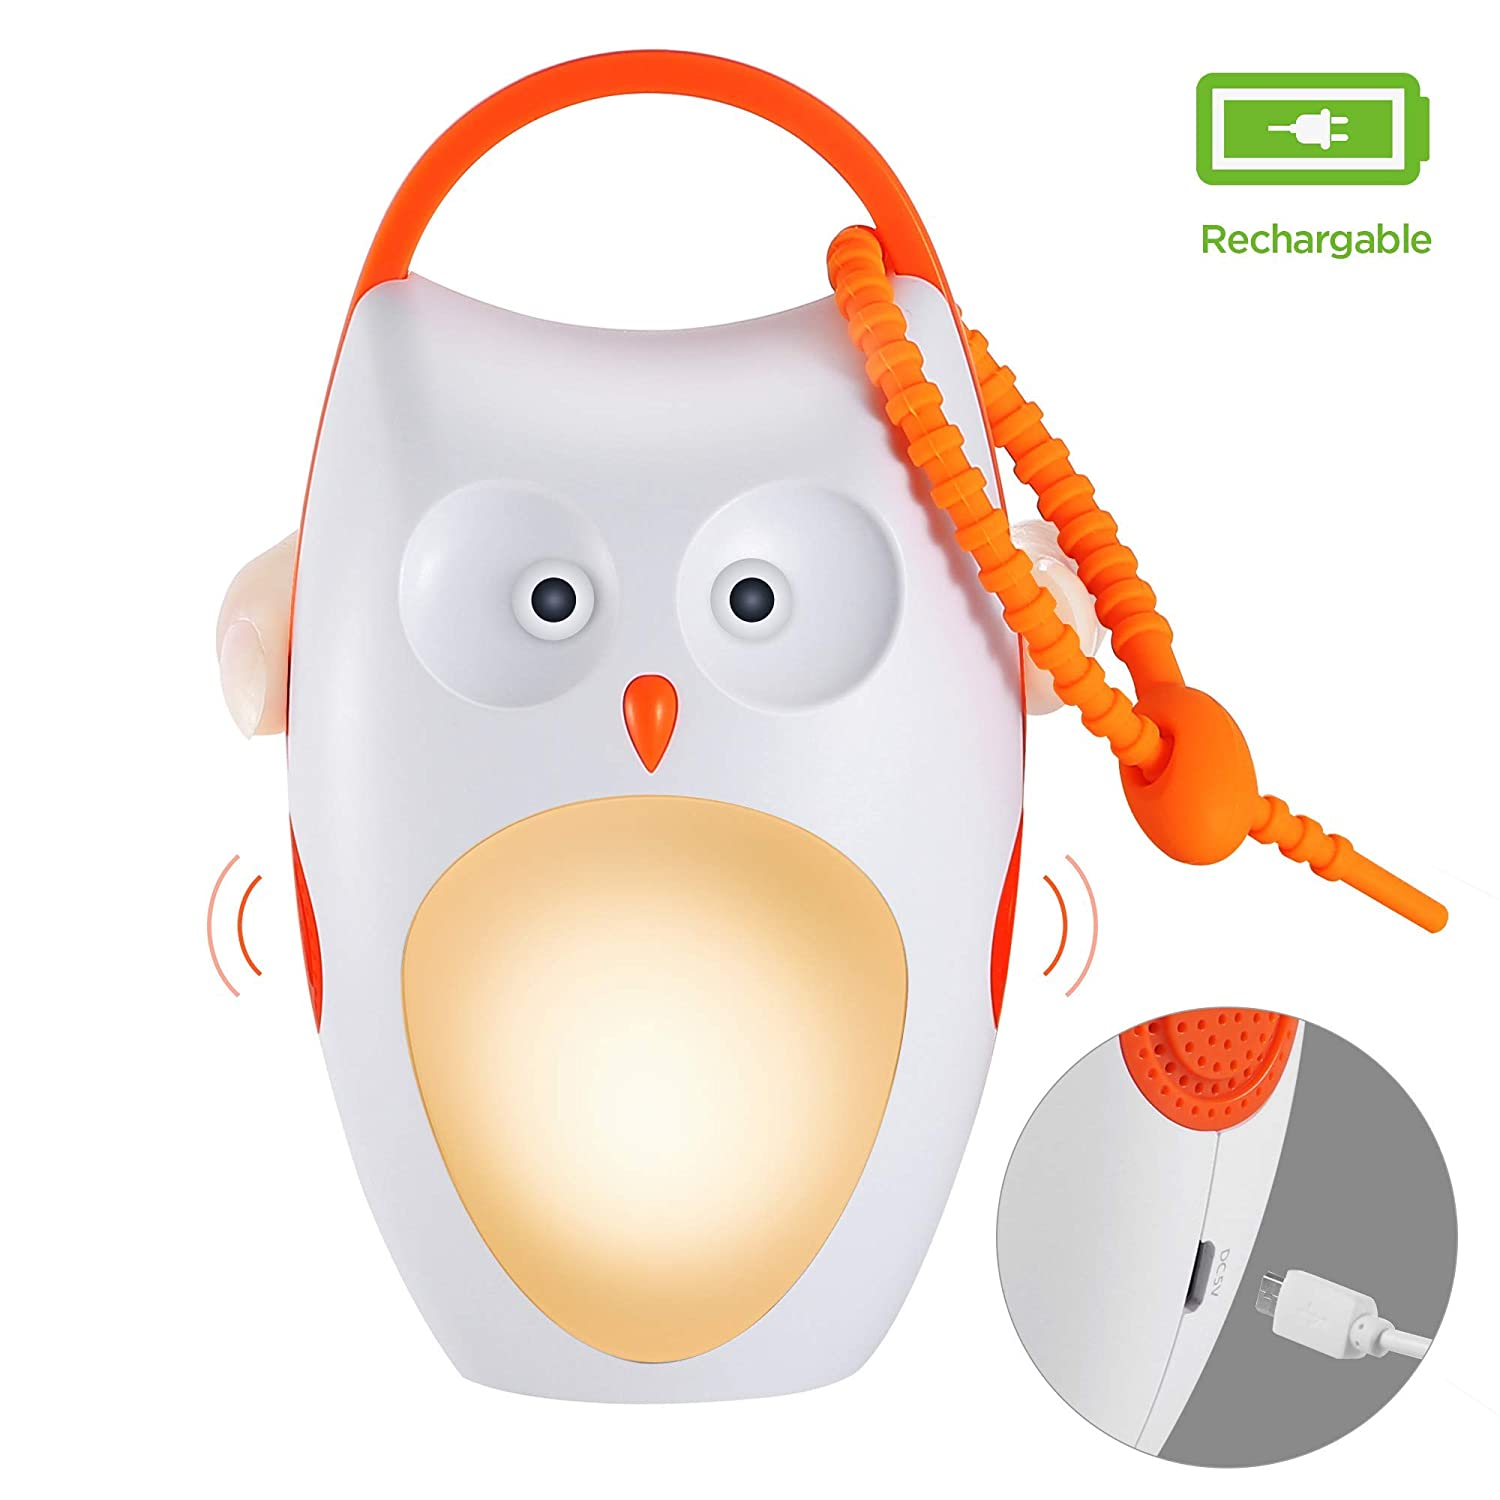 Updated SOAIY Portable Compact Baby Sleep Soother Owl White Noise Shusher Sound